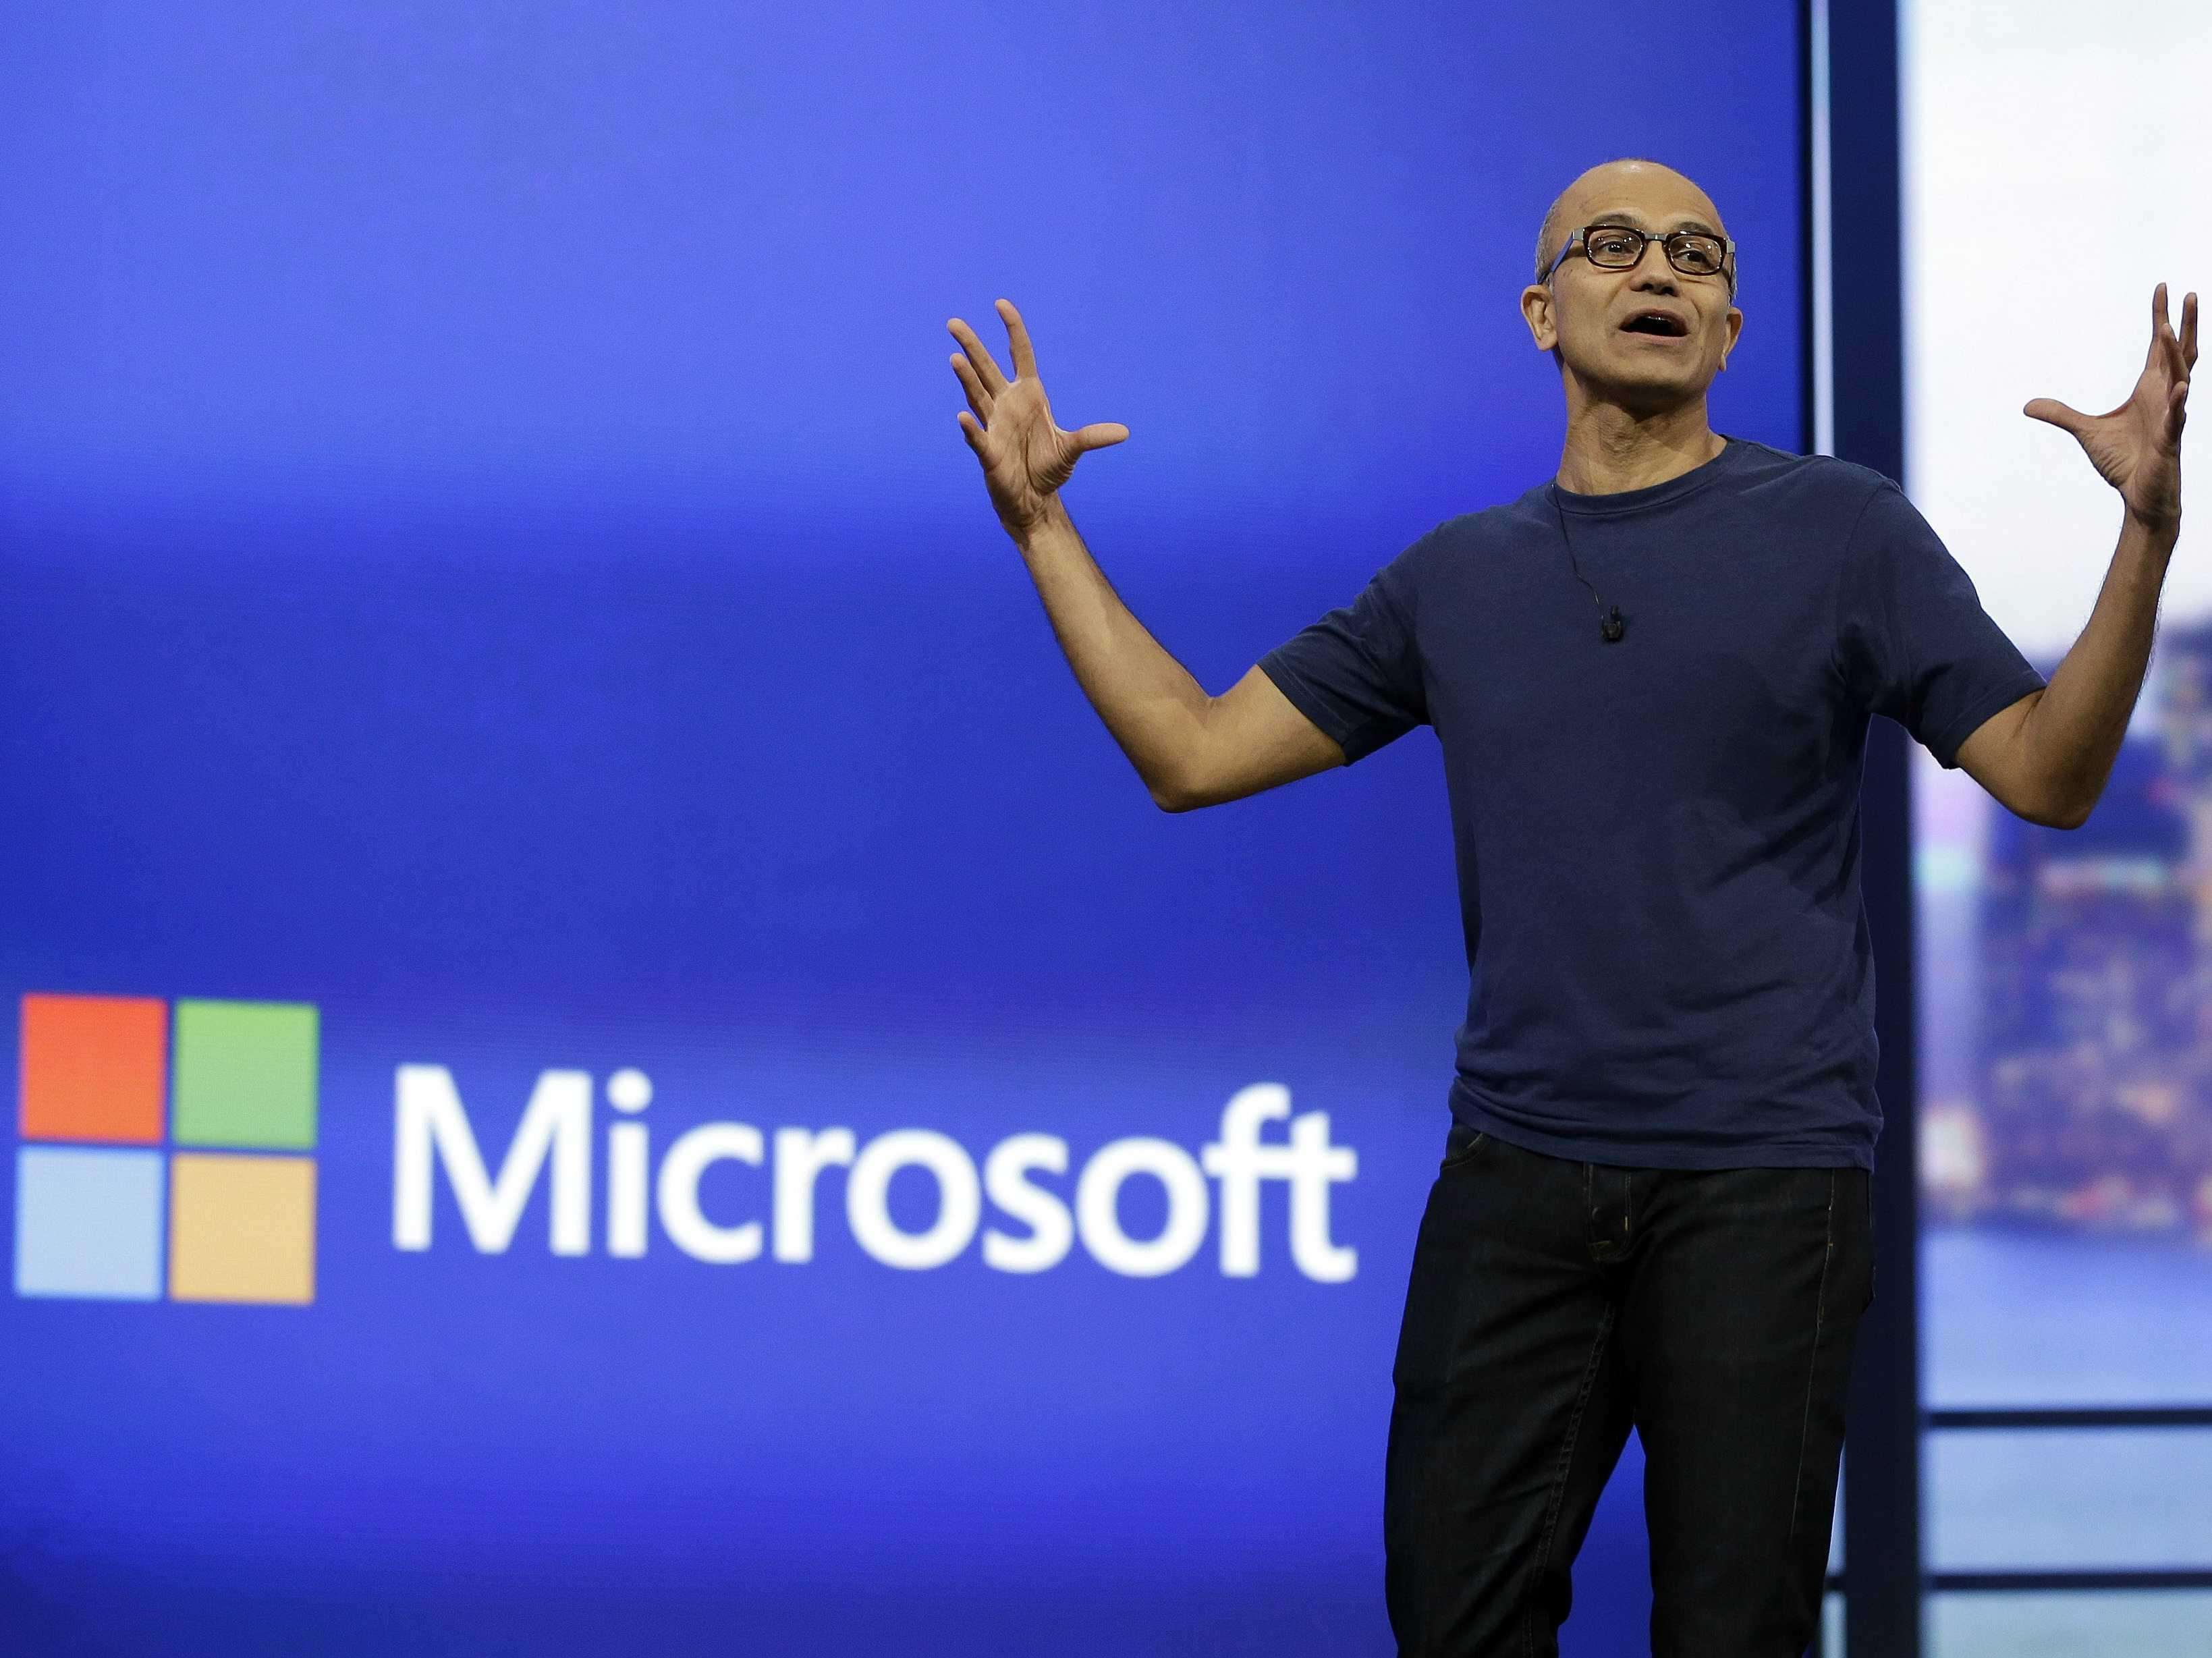 Everyone is talking about how Microsoft Office 365 is suddenly beating Google Apps